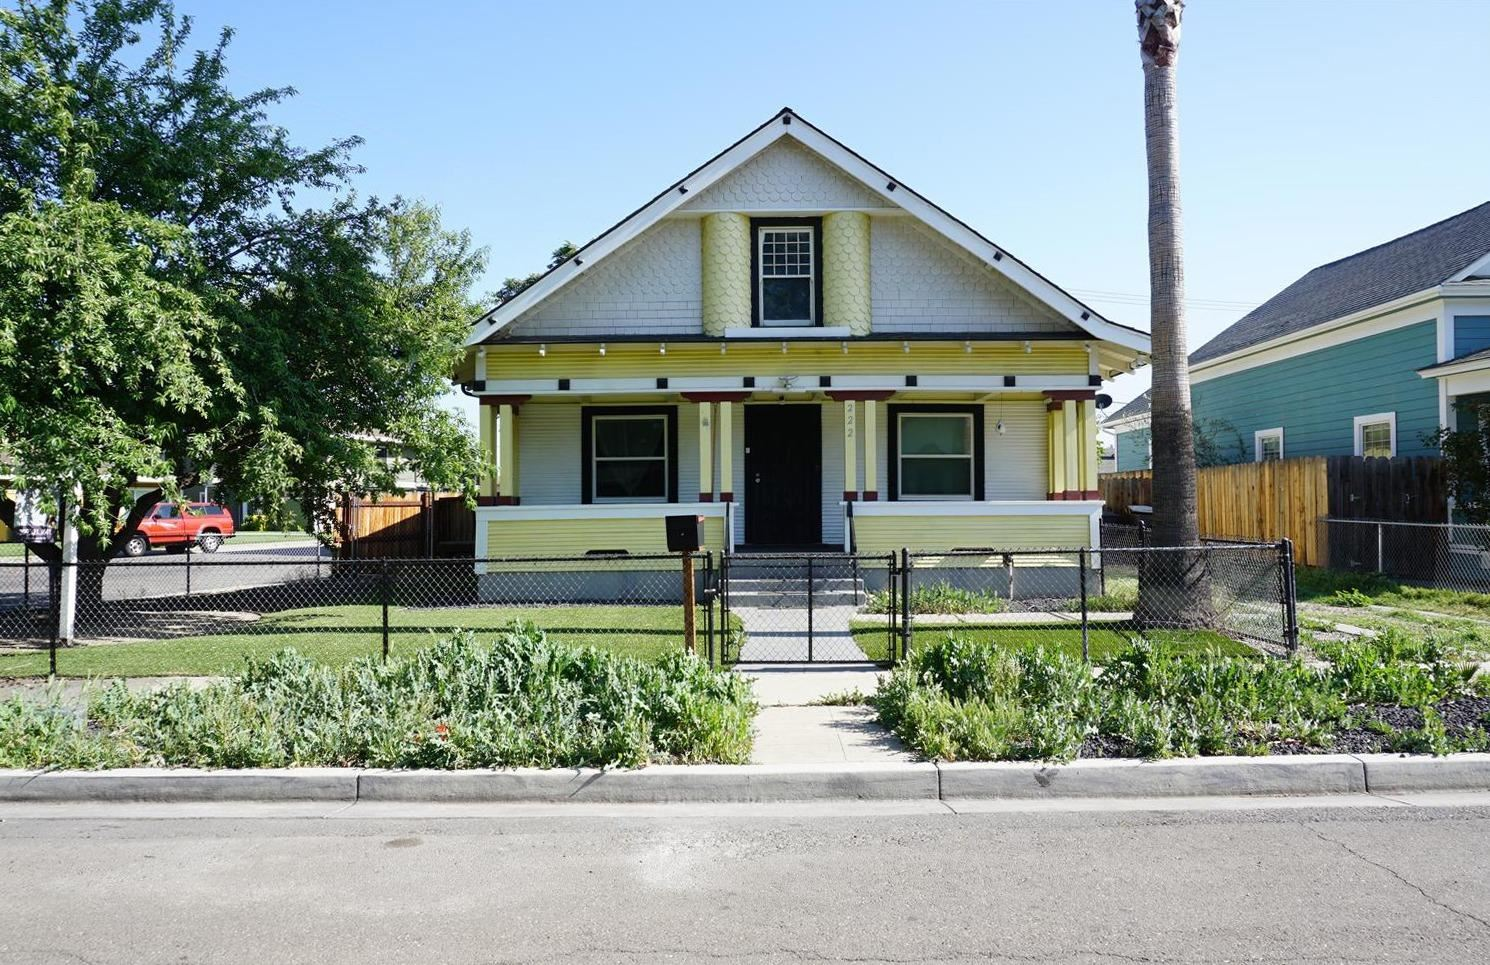 Photo of 222 7th Street, Tracy, CA 95376 (MLS # 221037664)